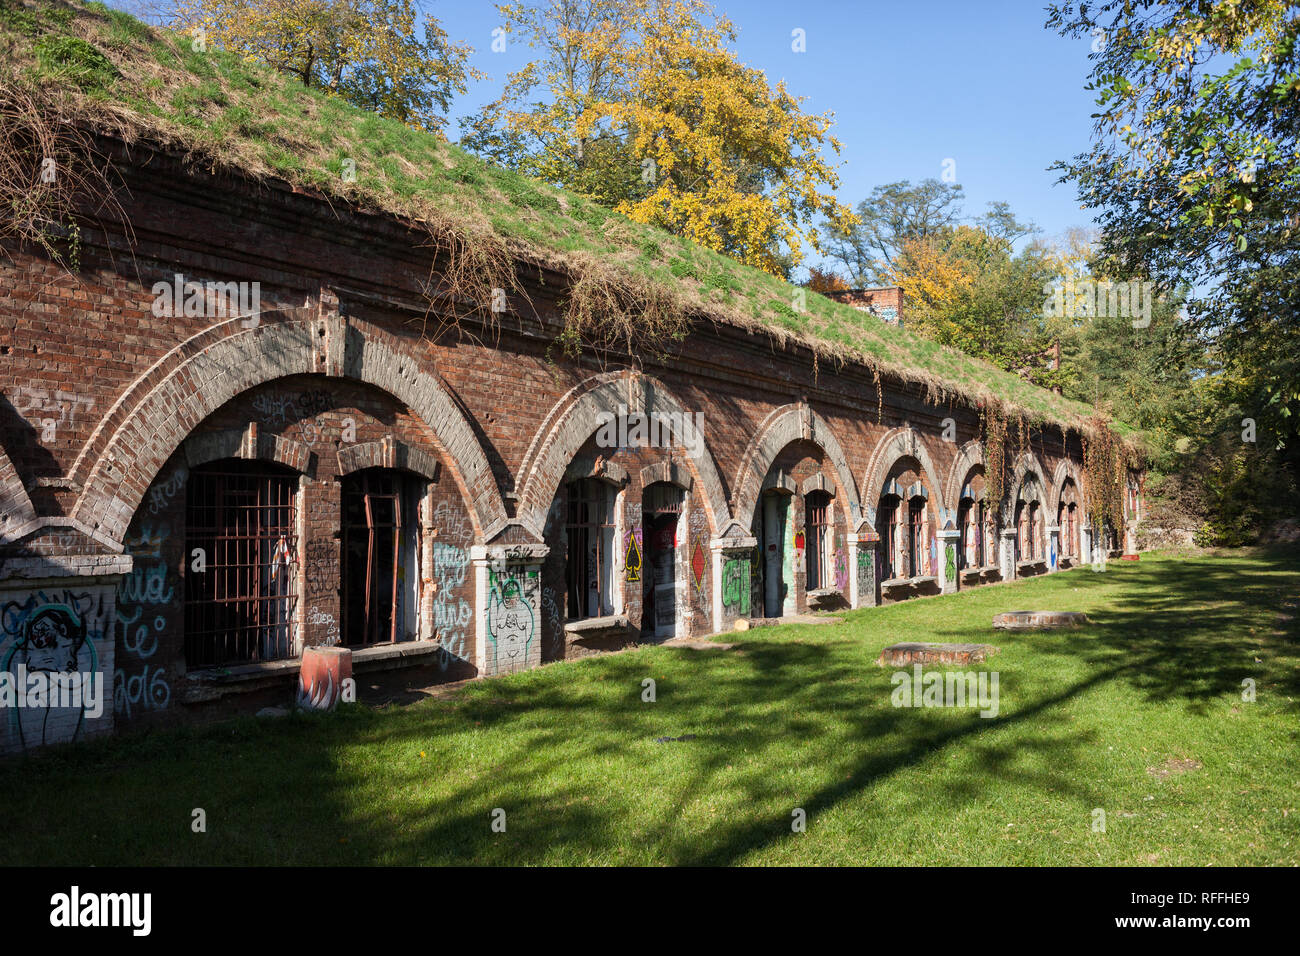 Fort Bema in Warsaw, Poland, 19th century fortification buildings built between 1886-90 under the orders of Imperial Russia. - Stock Image